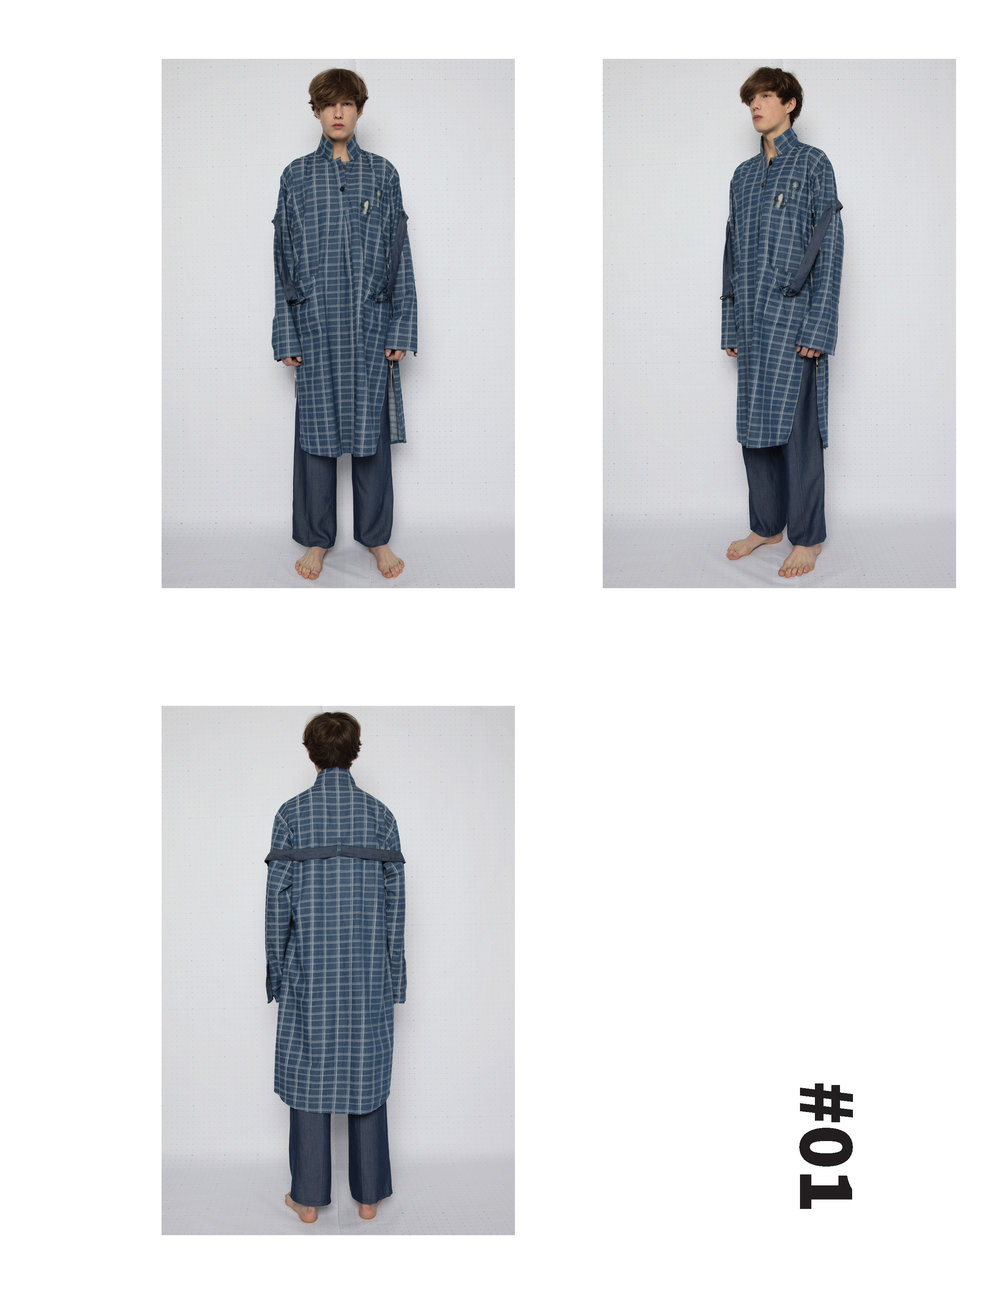 PDF_Outcome01_Lookbook_頁面_15.jpg